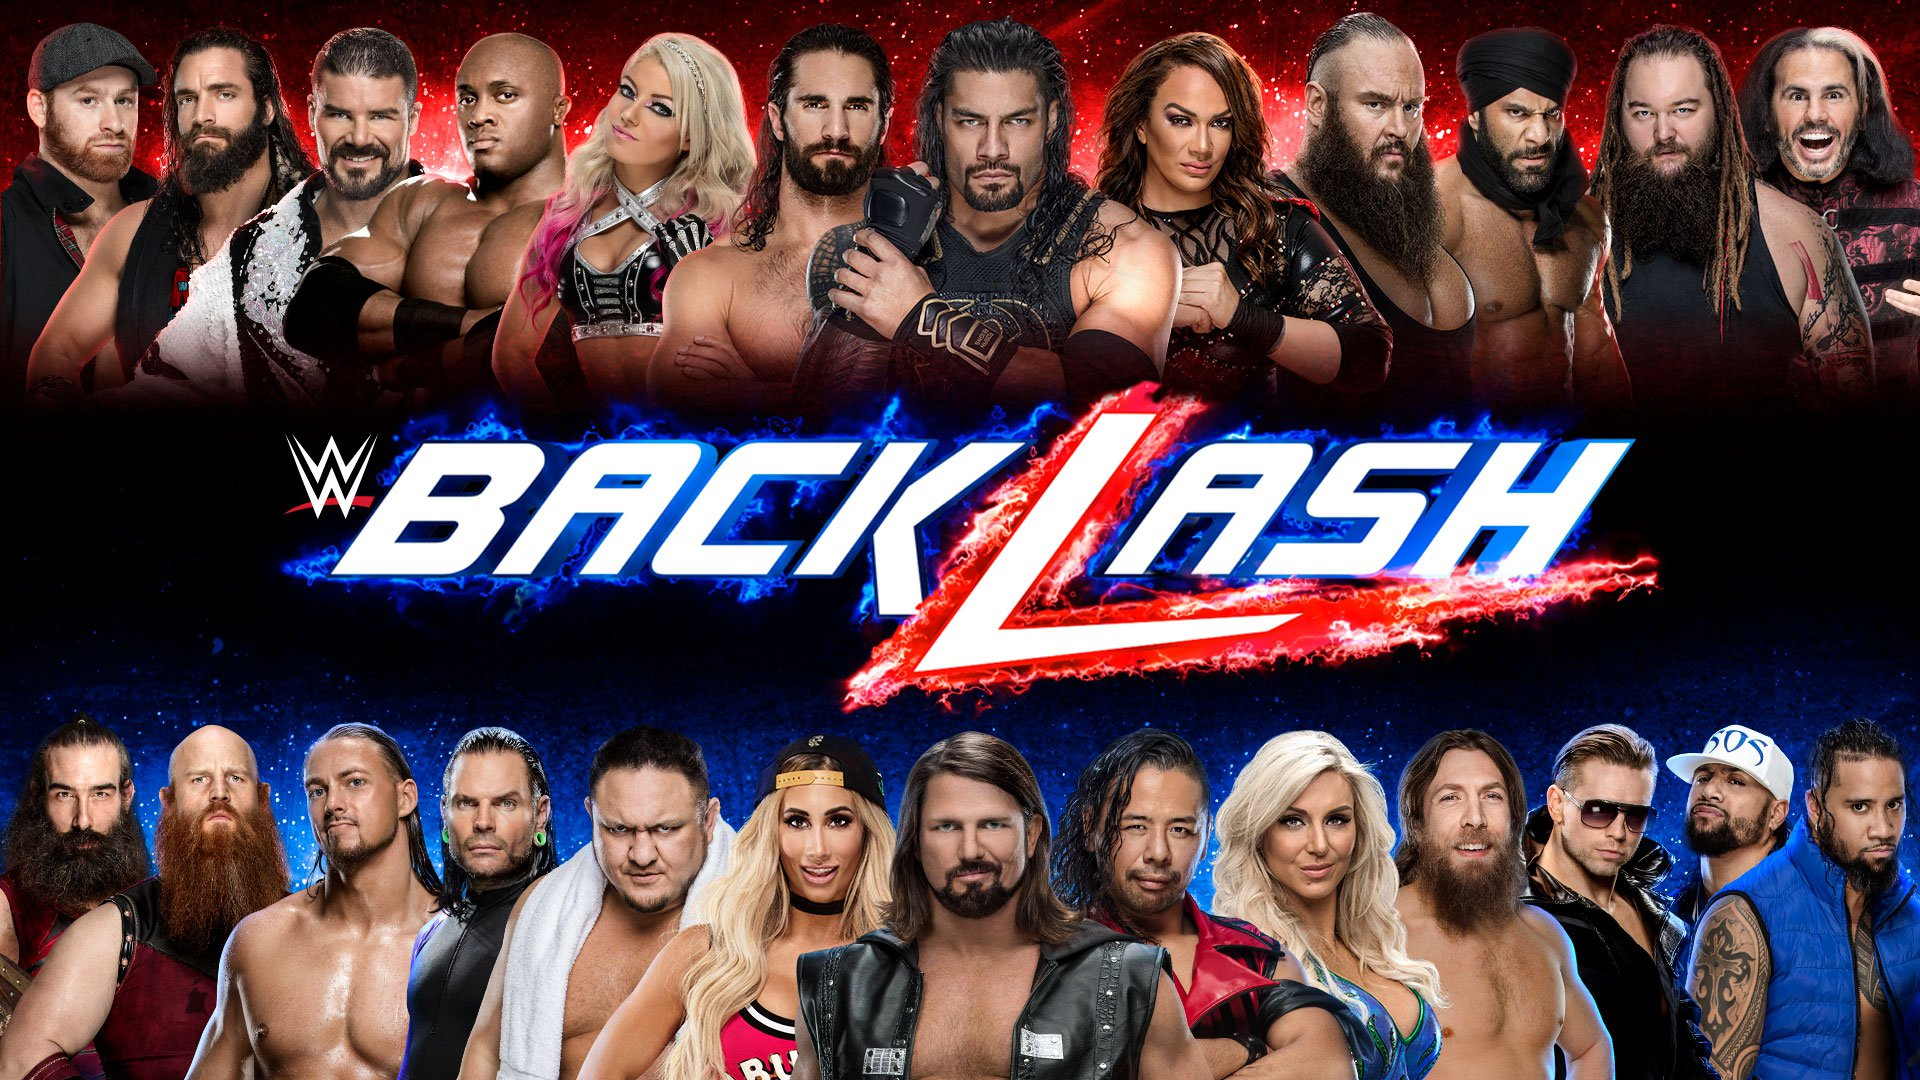 WWE Backlash 2018 Predictions